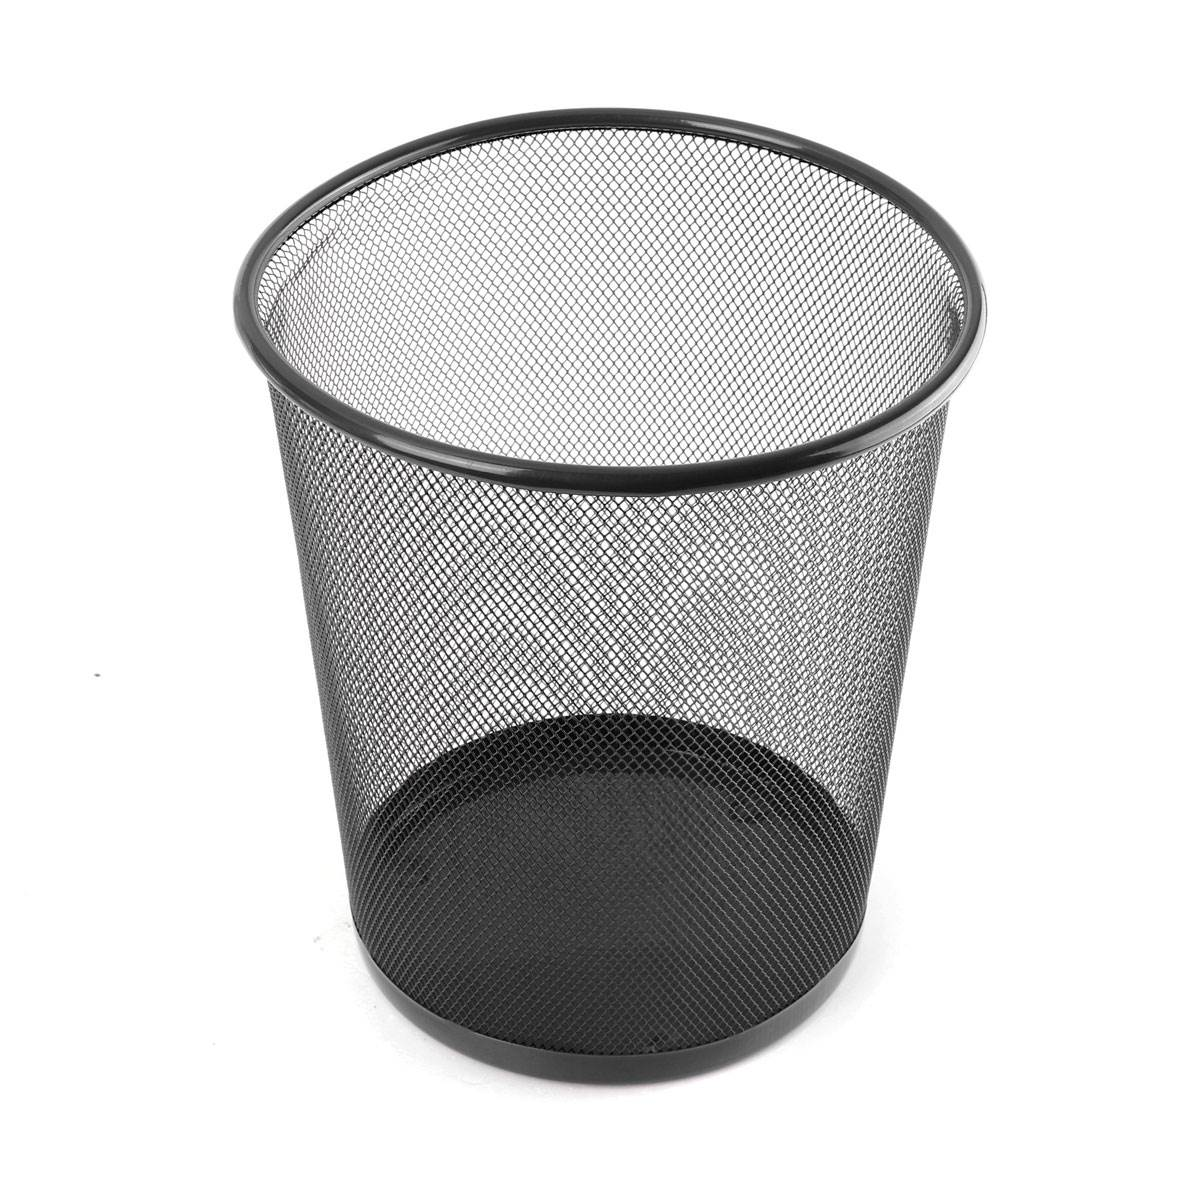 New Premier Colourful Metal Mesh Waste Paper Basket Bedroom Office Rubbish Bin 6Colors(China (Mainland))